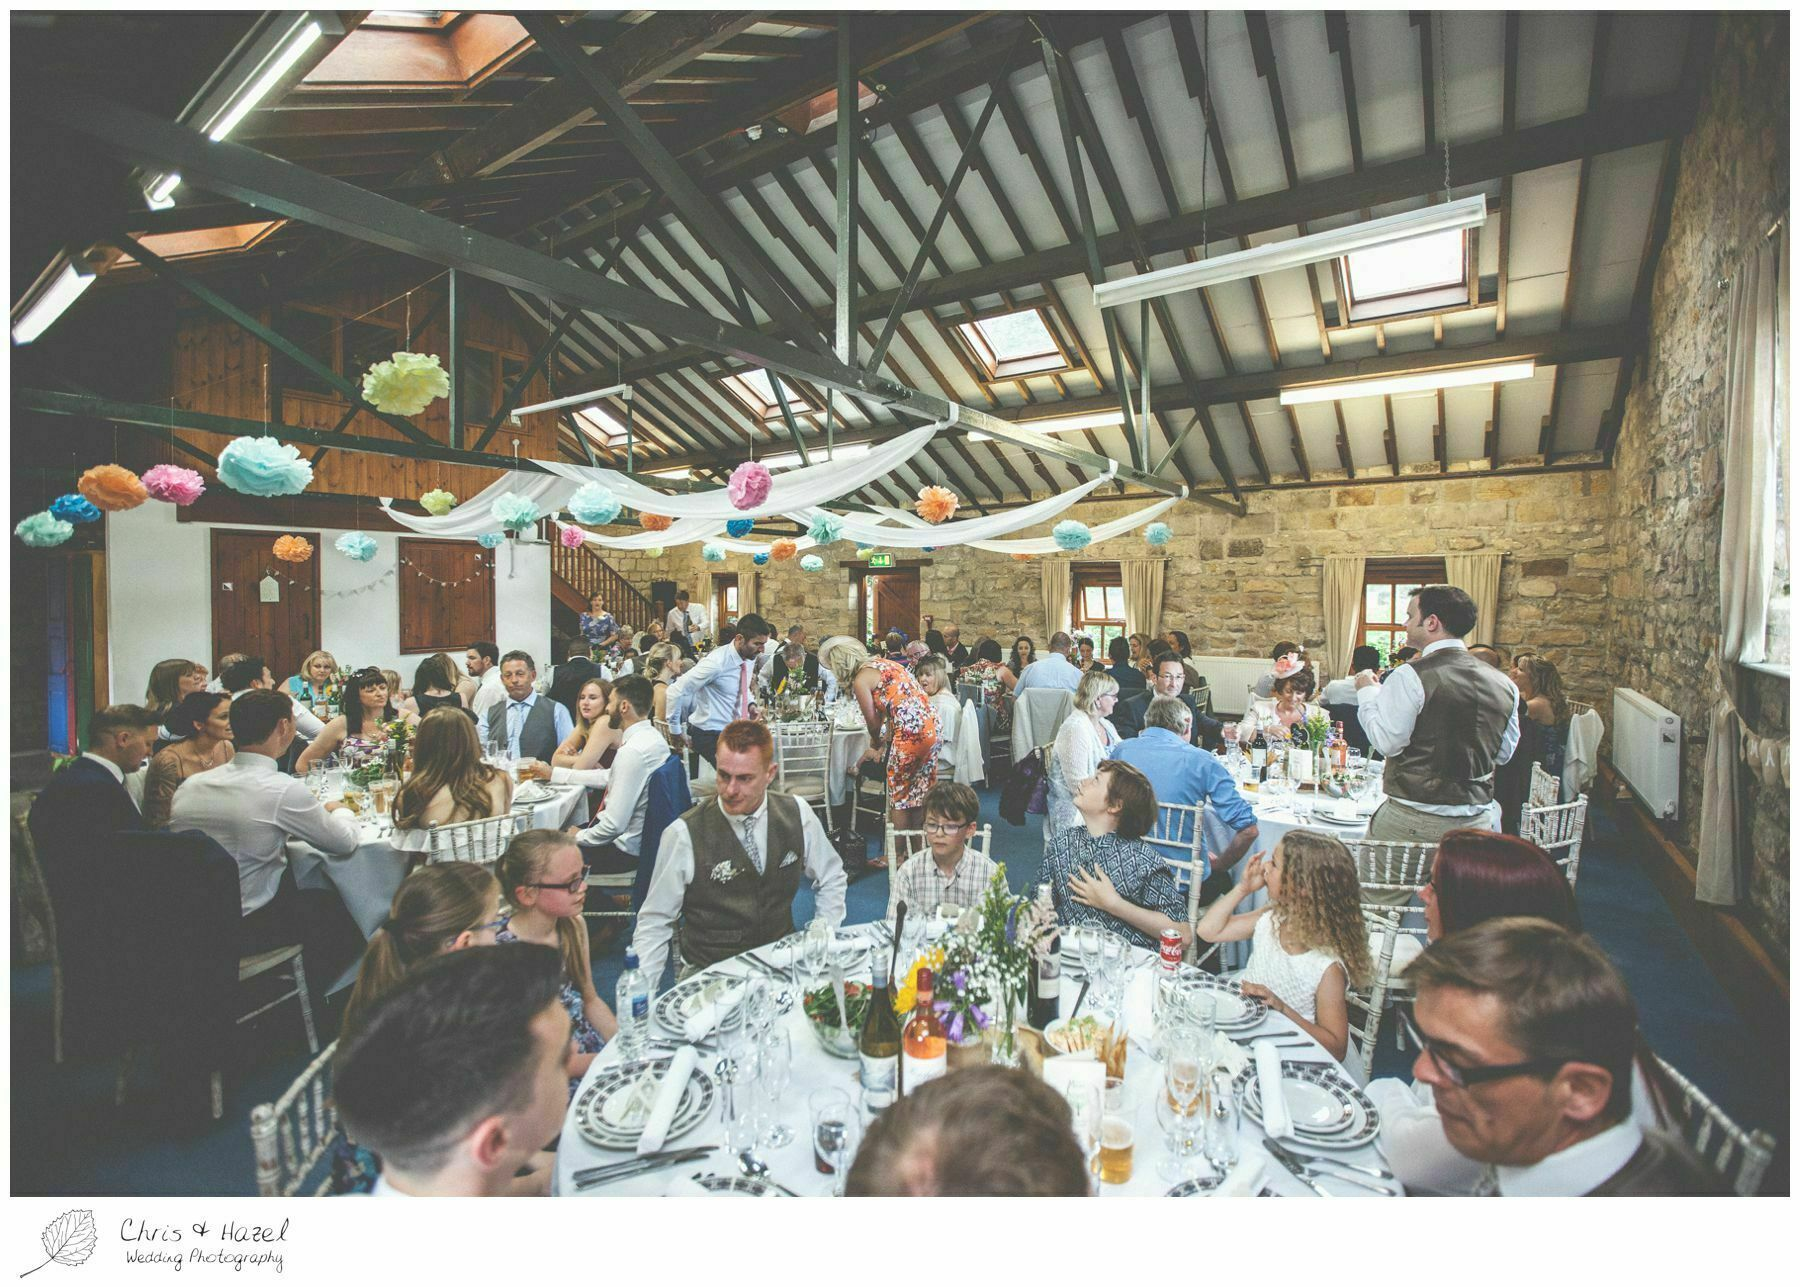 wedding breakfast barn, wood wedding theme, eco wedding, love letters, wedding, Eccup Wedding Photographer, Lineham Farm, Wedding Photography Leeds, Chris and Hazel Wedding Photography, Richard Wyatt, Laura Kelly